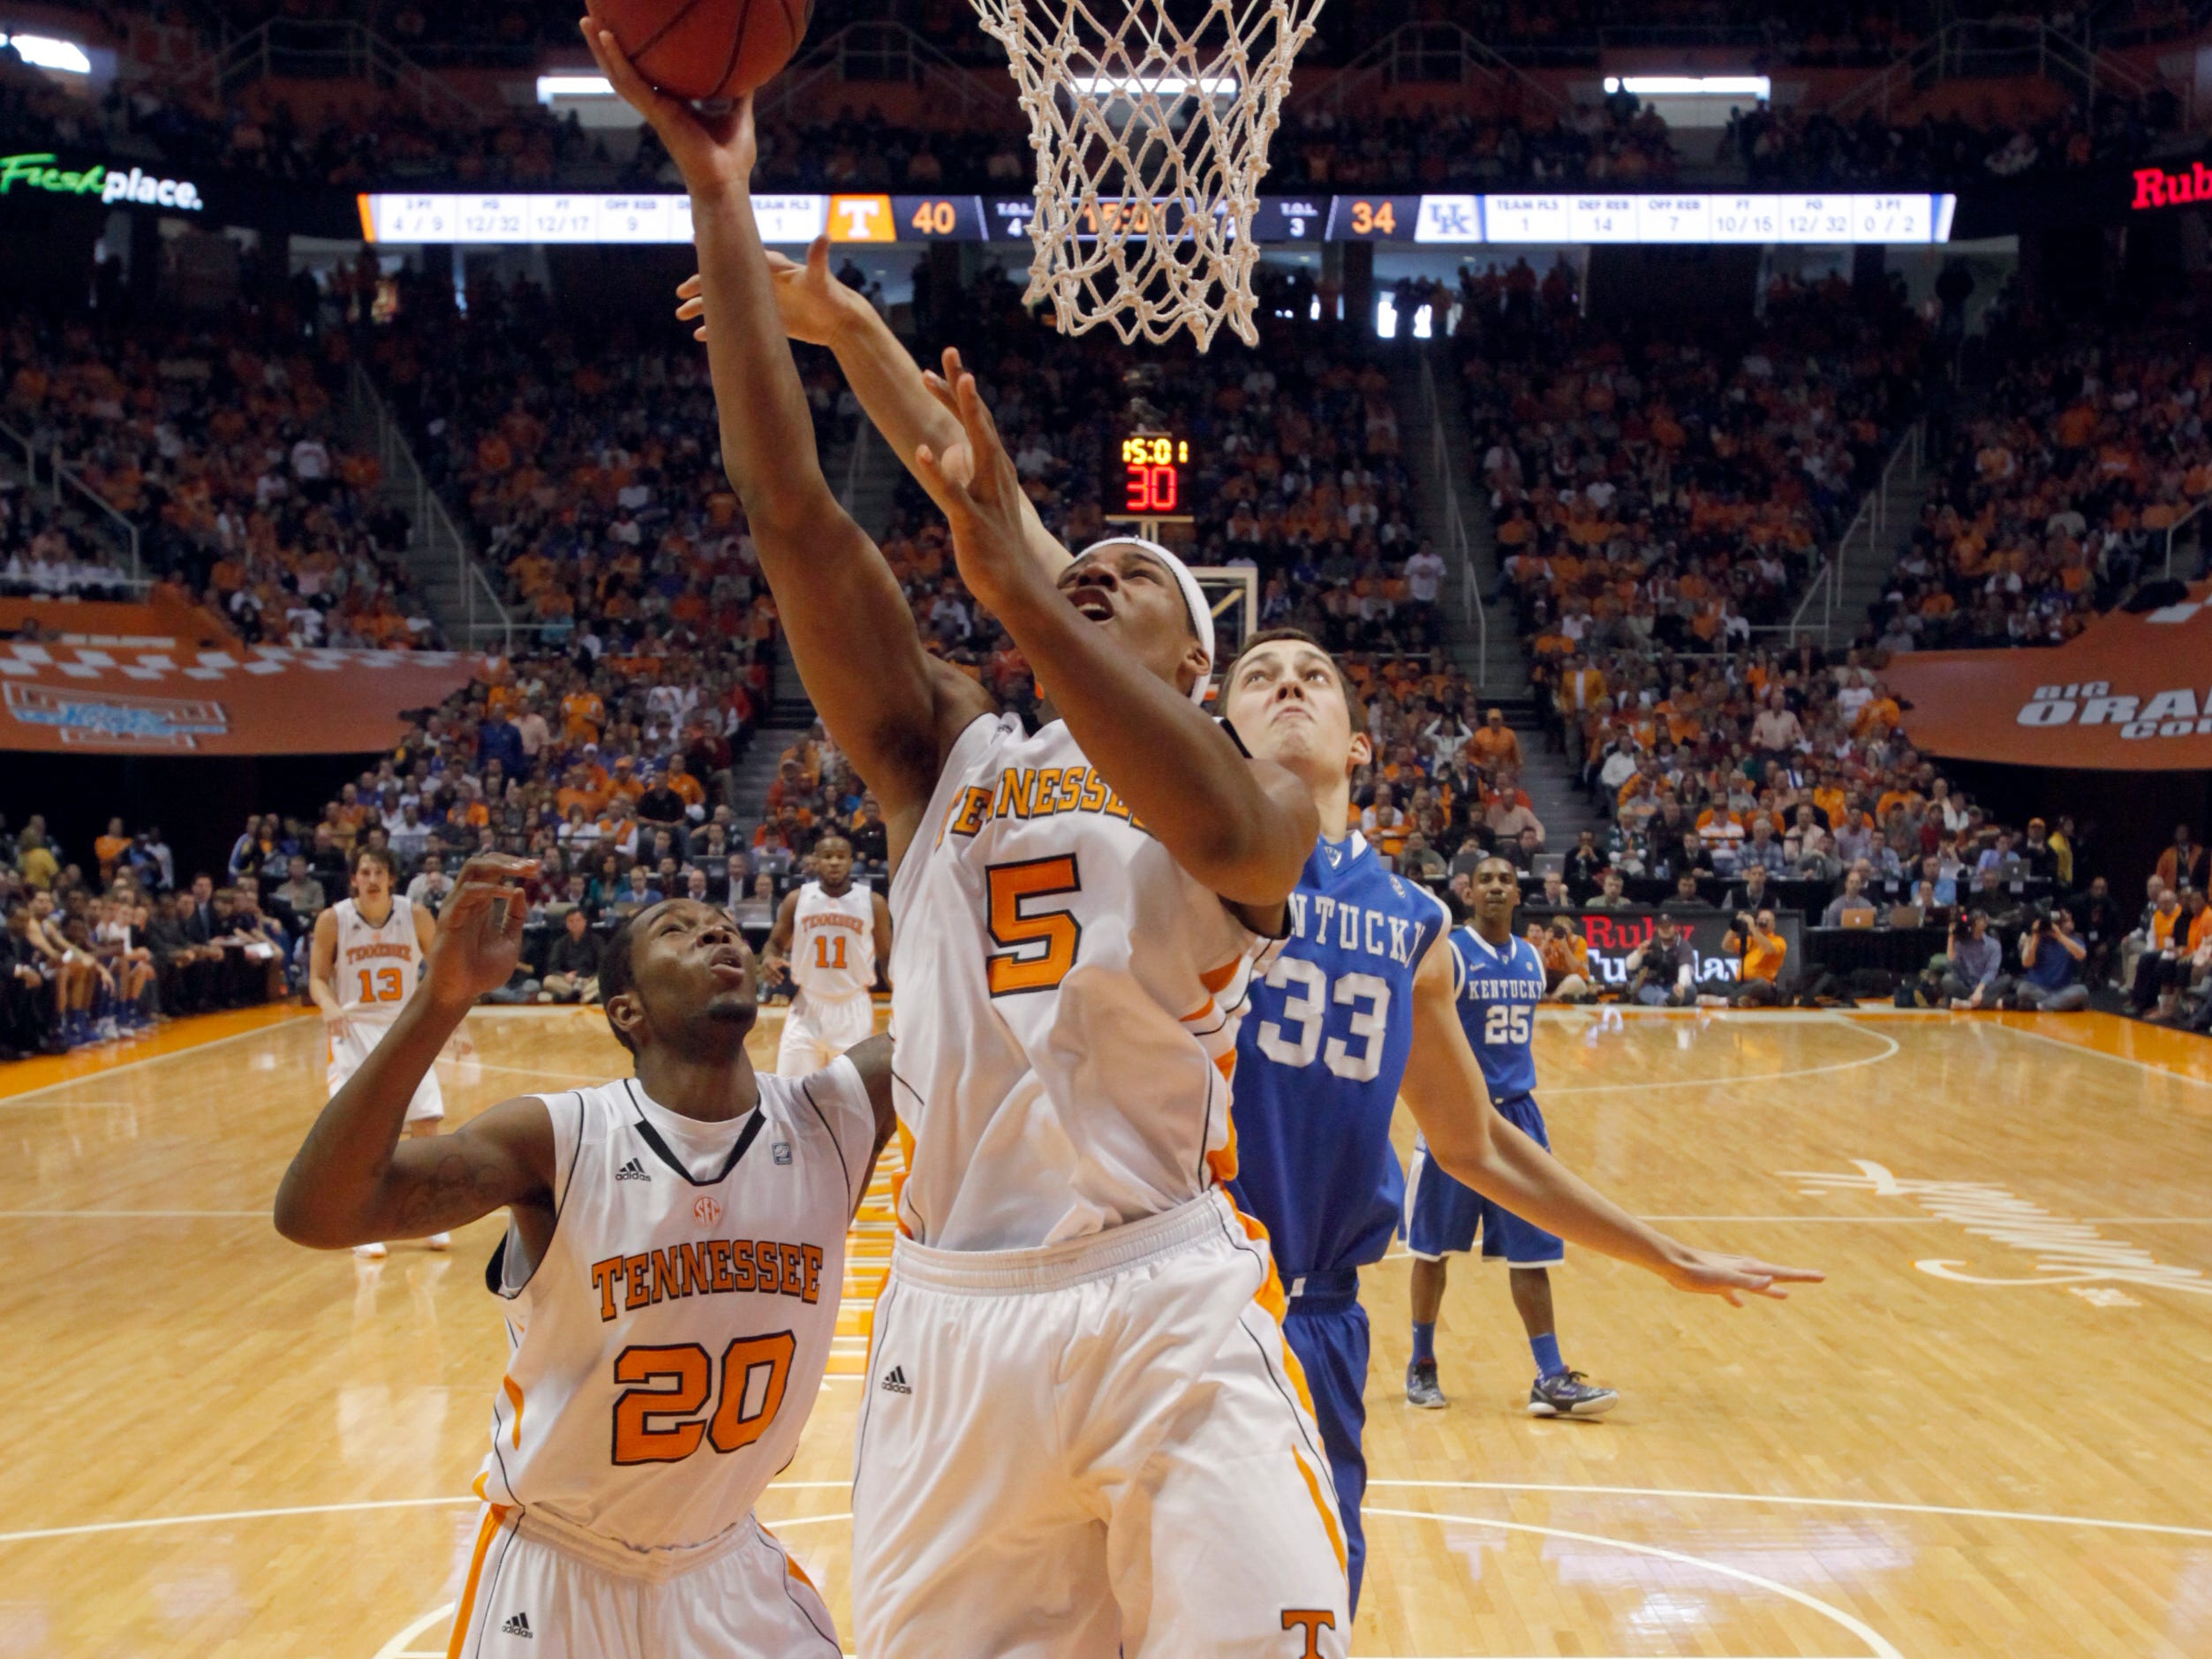 Tennessee forward Jarnell Stokes (5) goes in for a layup while Kentucky forward Kyle Wiltjer (33) defends at Thompson-Boling Arena in Saturday, Jan. 14, 2012.  Kentucky defeated Tennessee 65-62.